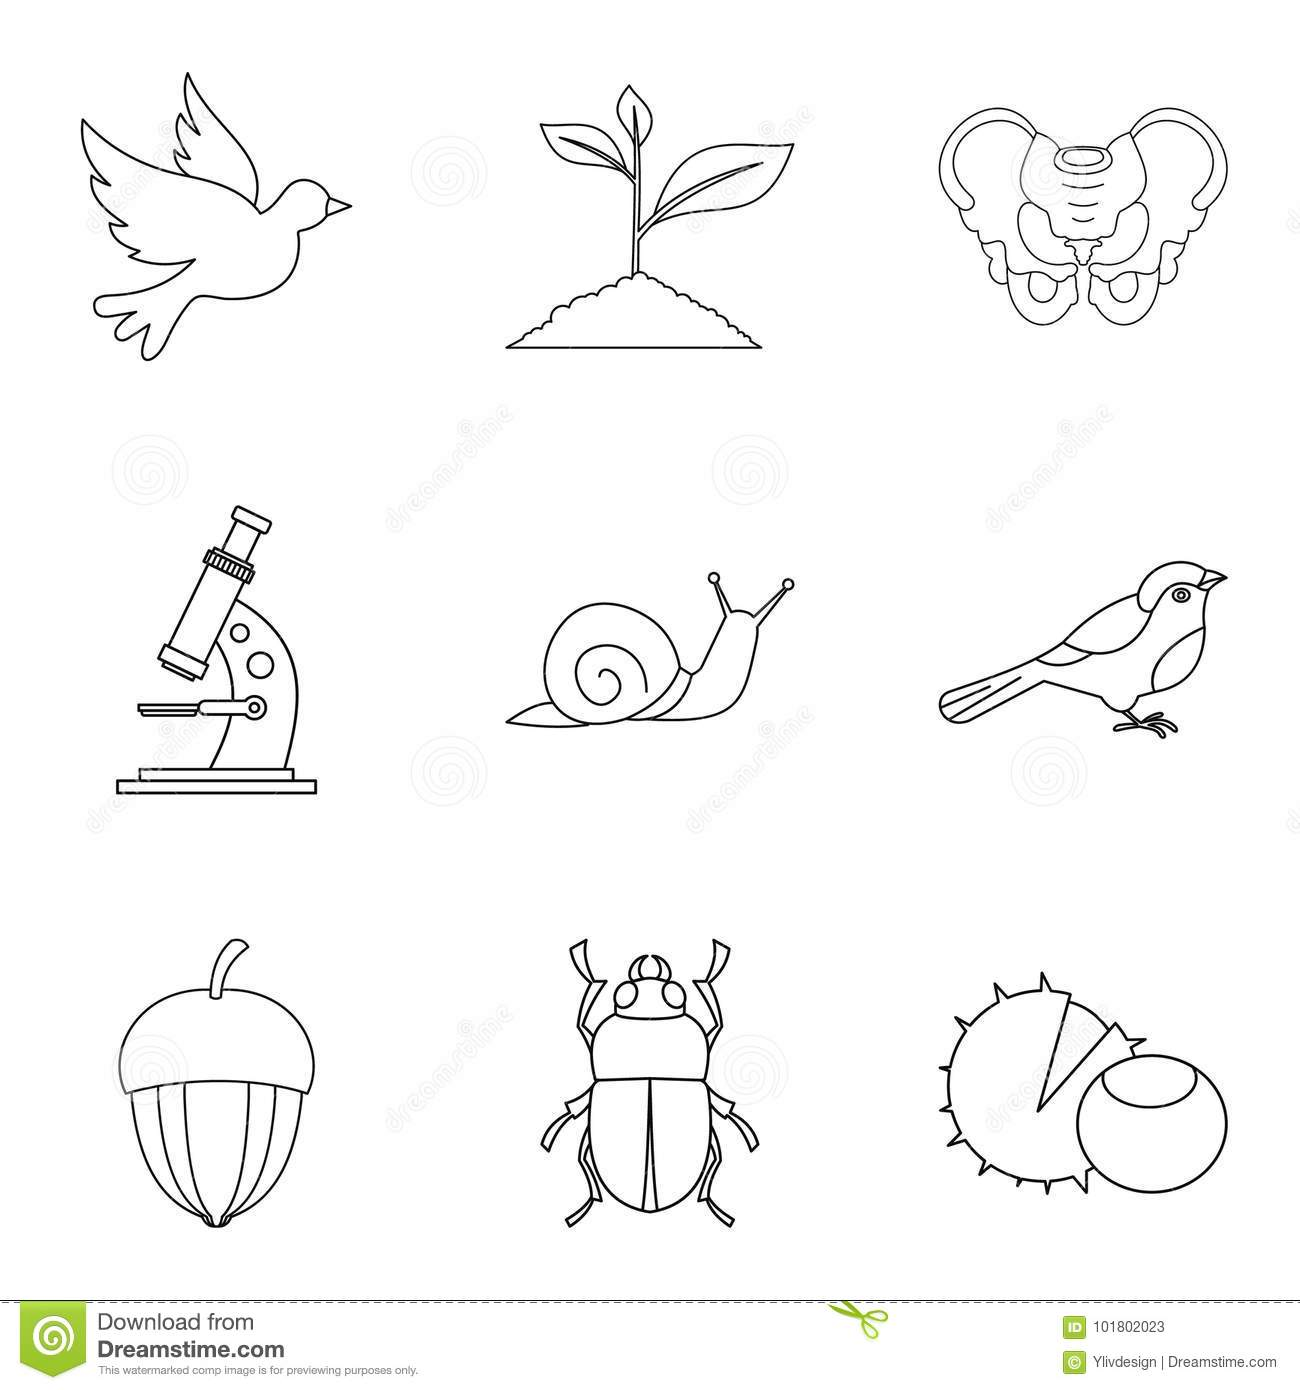 Flier icons set, outline style